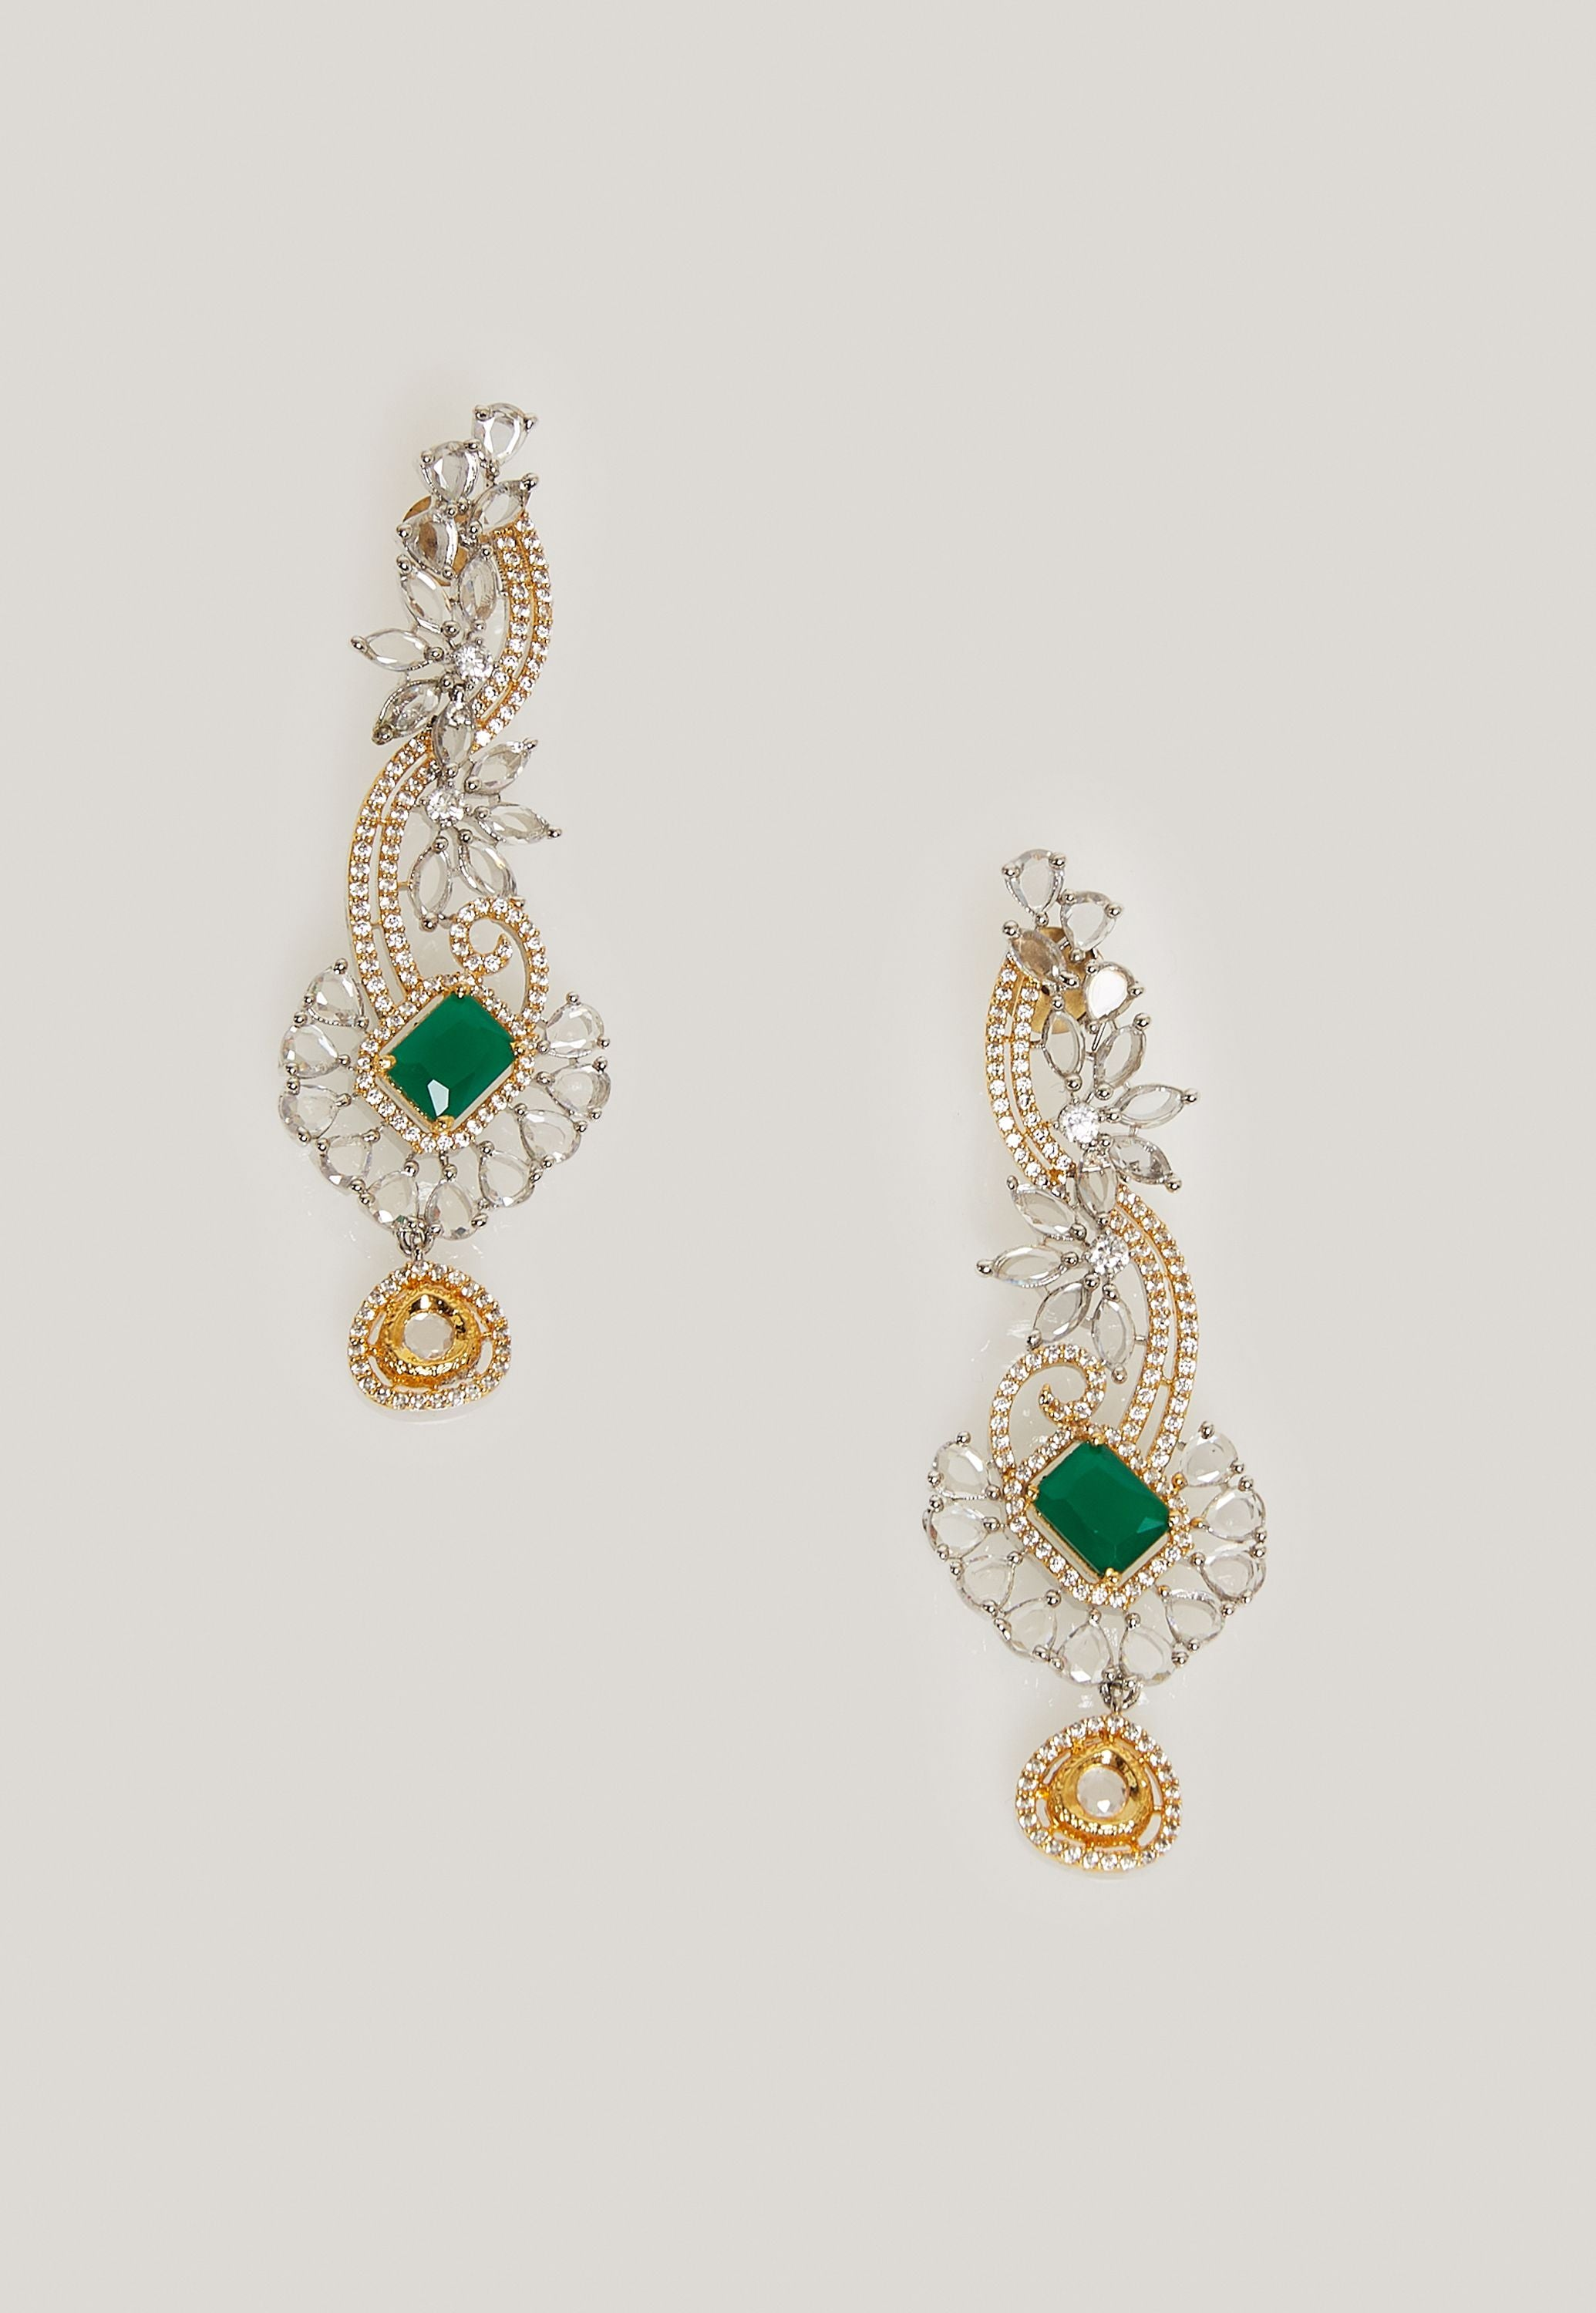 CUBIC ZIRCONIA, SIMULATED EMERALDS WITH PEARL EARRINGS